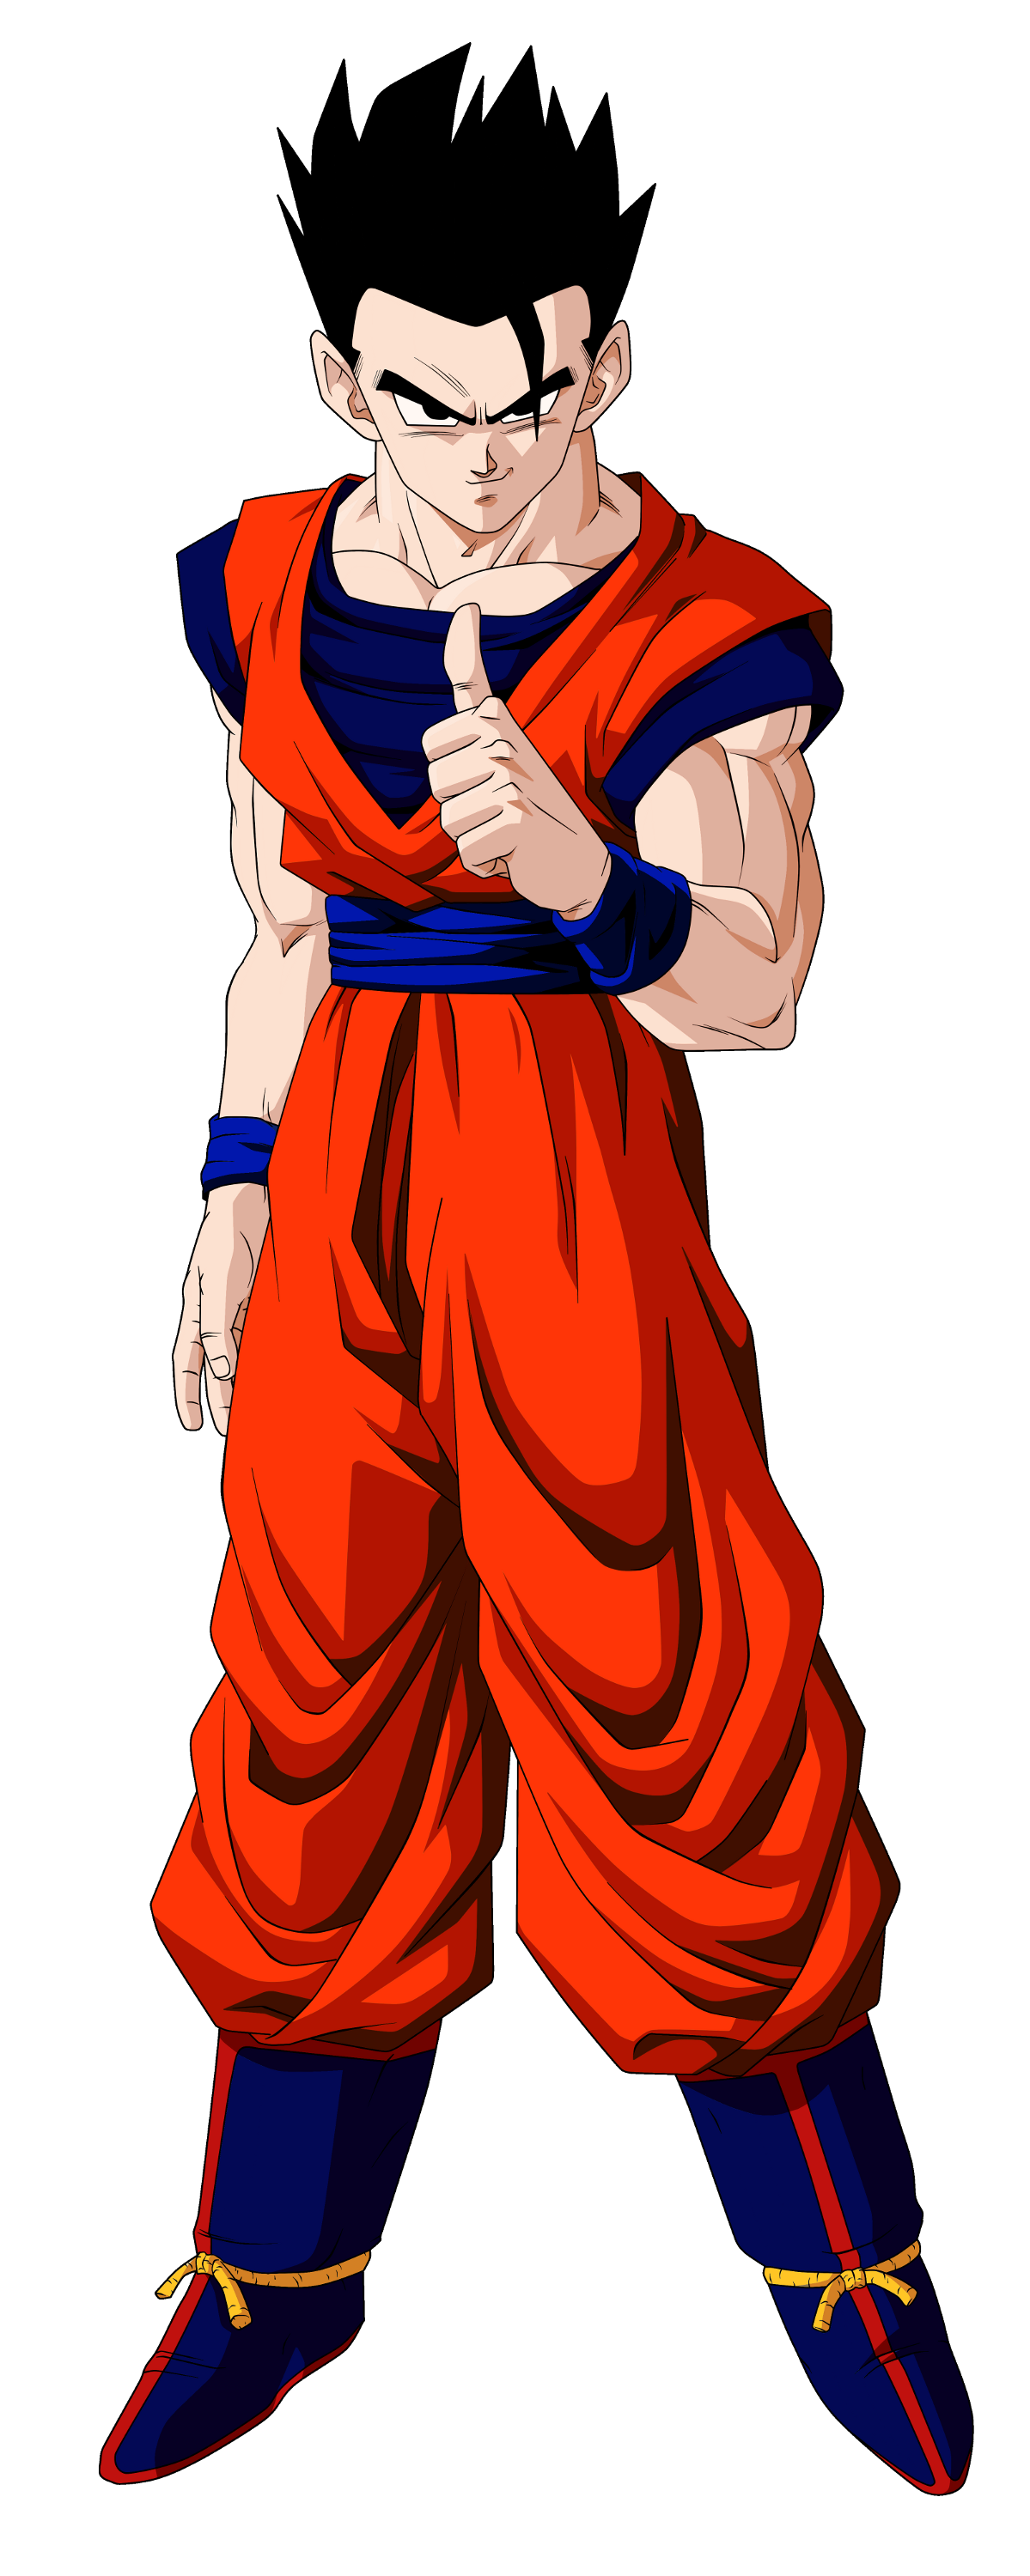 Gohan definitivo dragon ball wiki - Dragon ball z gohan images ...